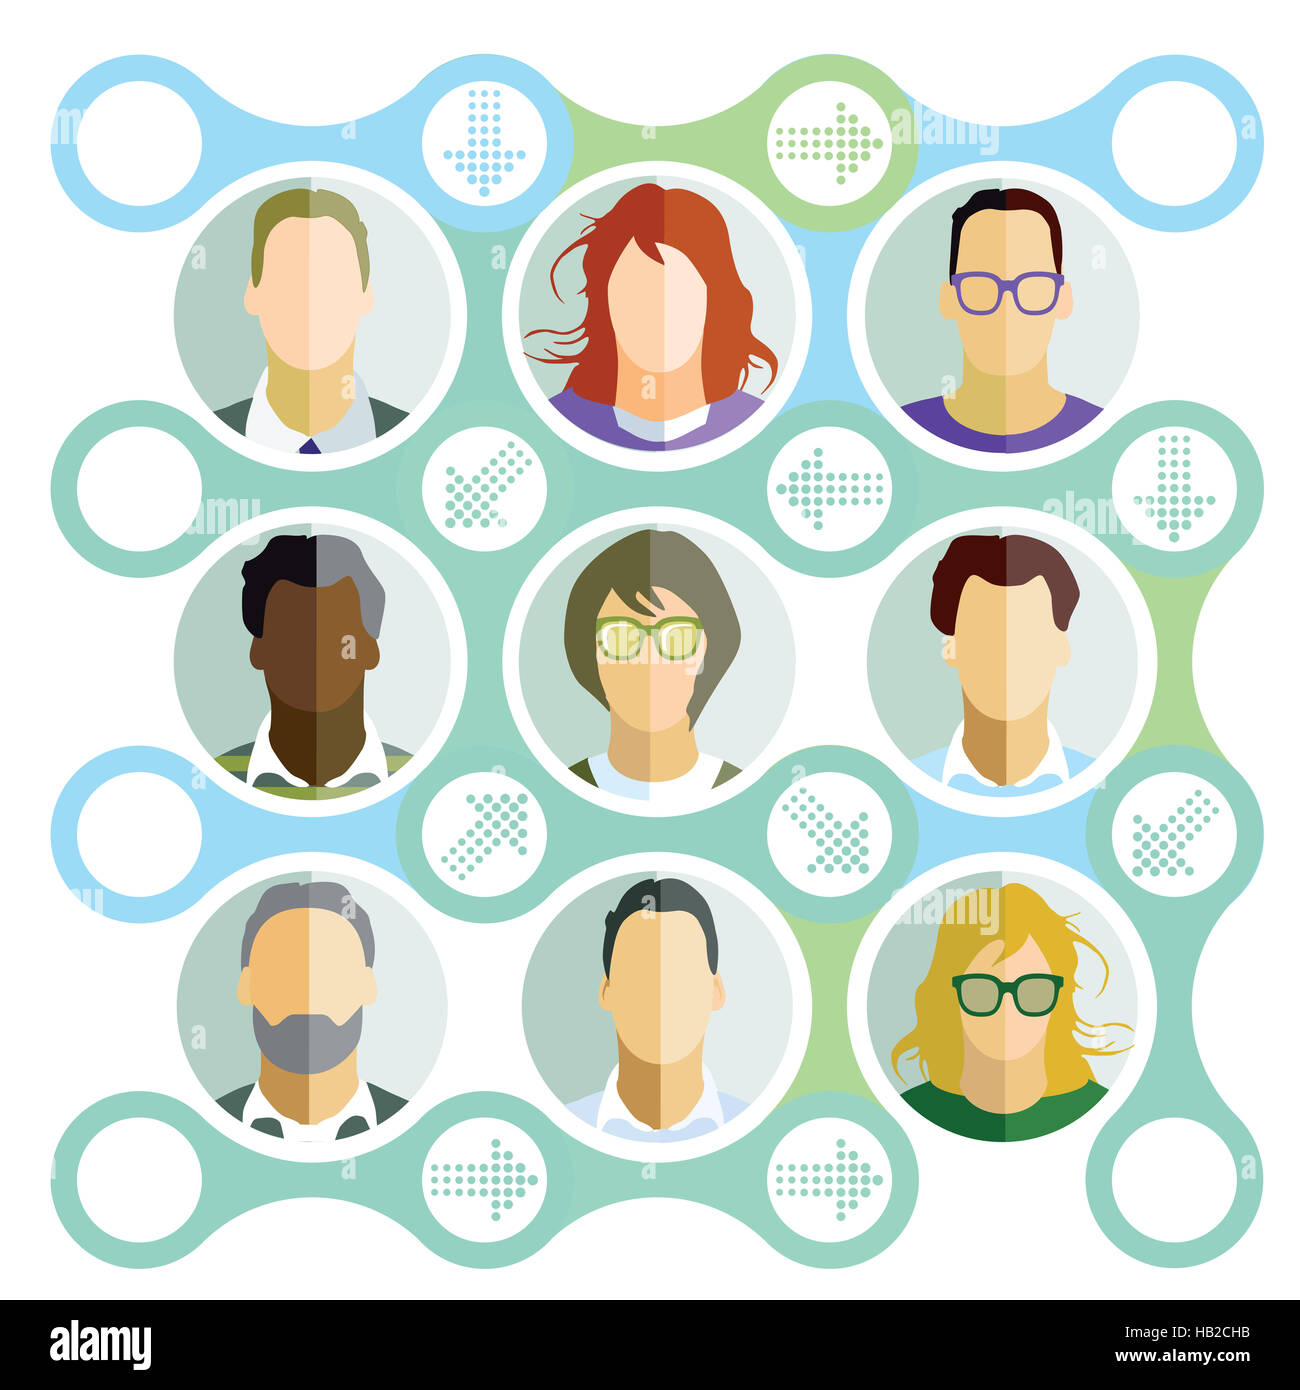 Team contacts - Stock Image